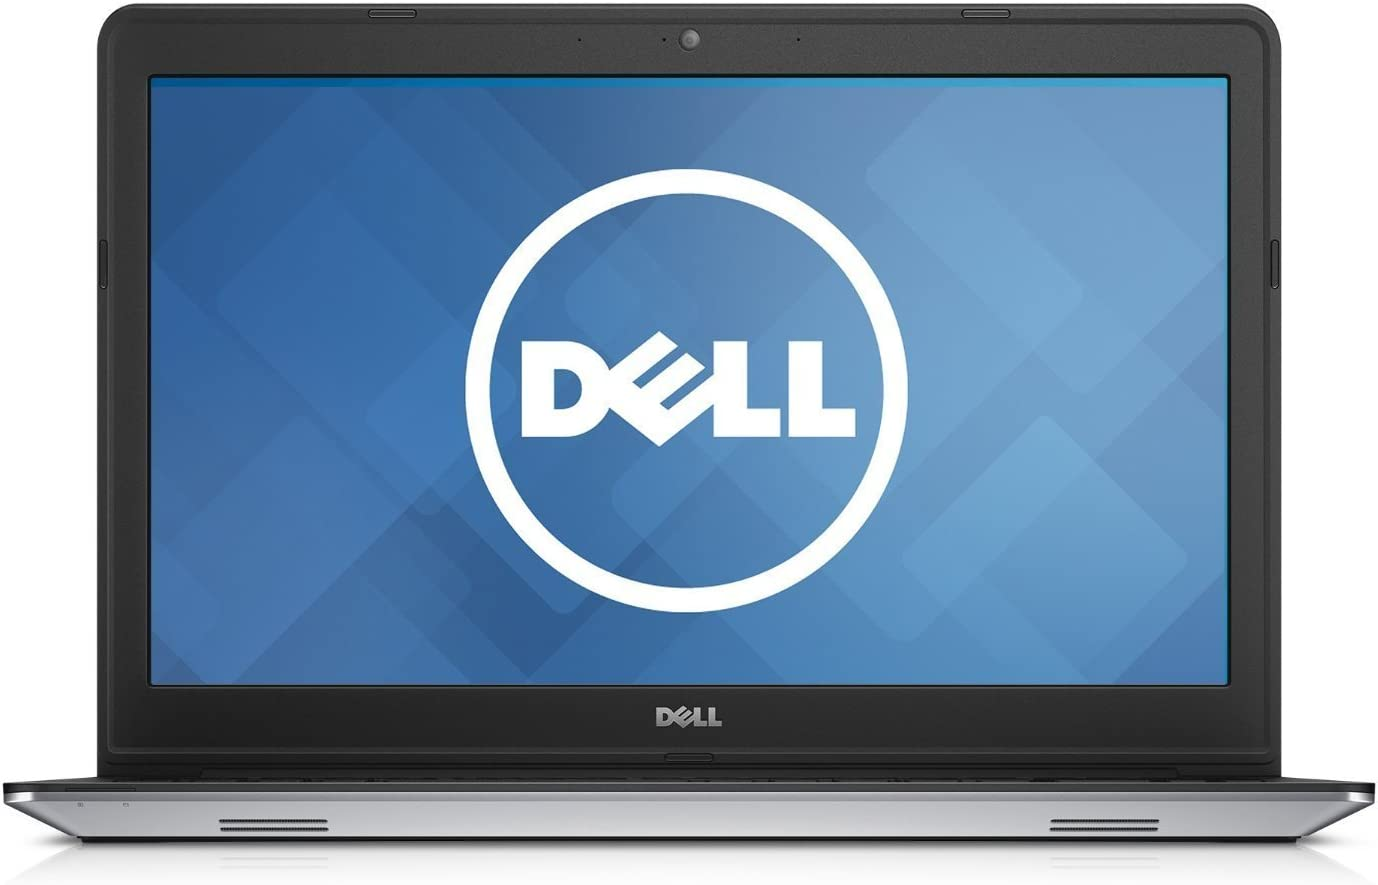 Dell Inspiron 15 5000 i5547-7450sLV Signature Edition Laptop, 15.6-inch HD Display 8GB Memory Intel Core i5-4210U 1TB HDD Up to 6.5 Hours Battery Life